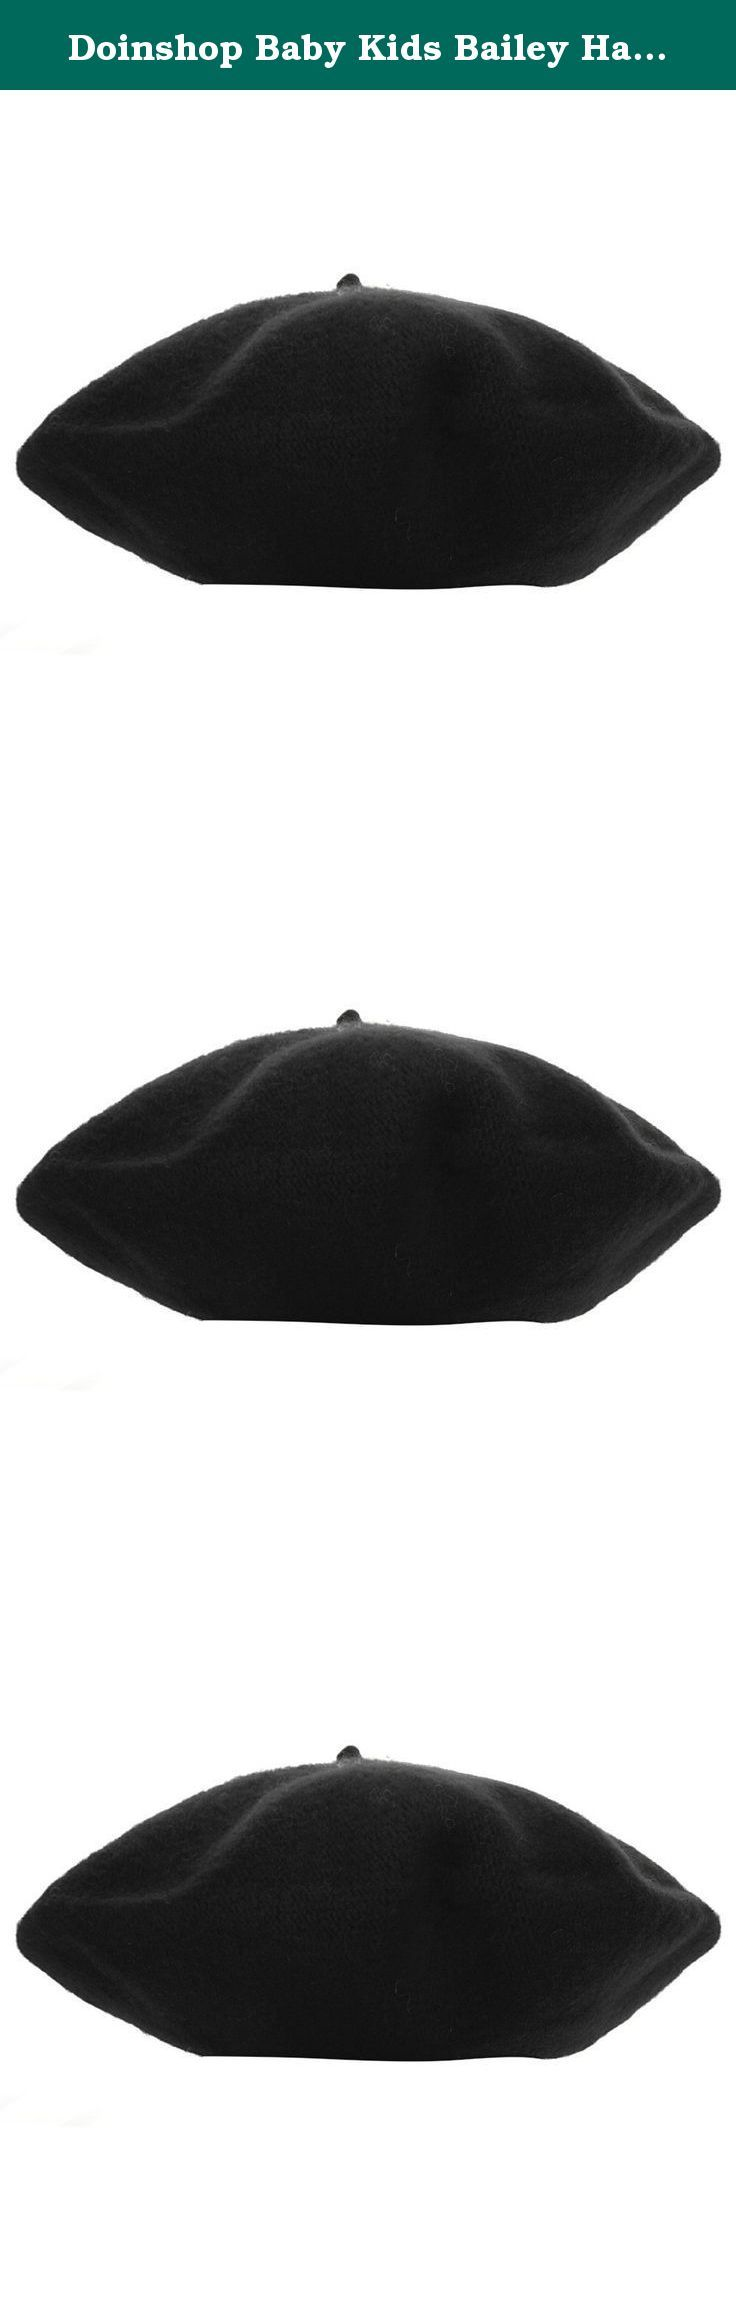 Doinshop Baby Kids Bailey Hat Toddler Infant Dome Beret Cap Headwear (black). Package Content: 1PC Hat (without retail package).